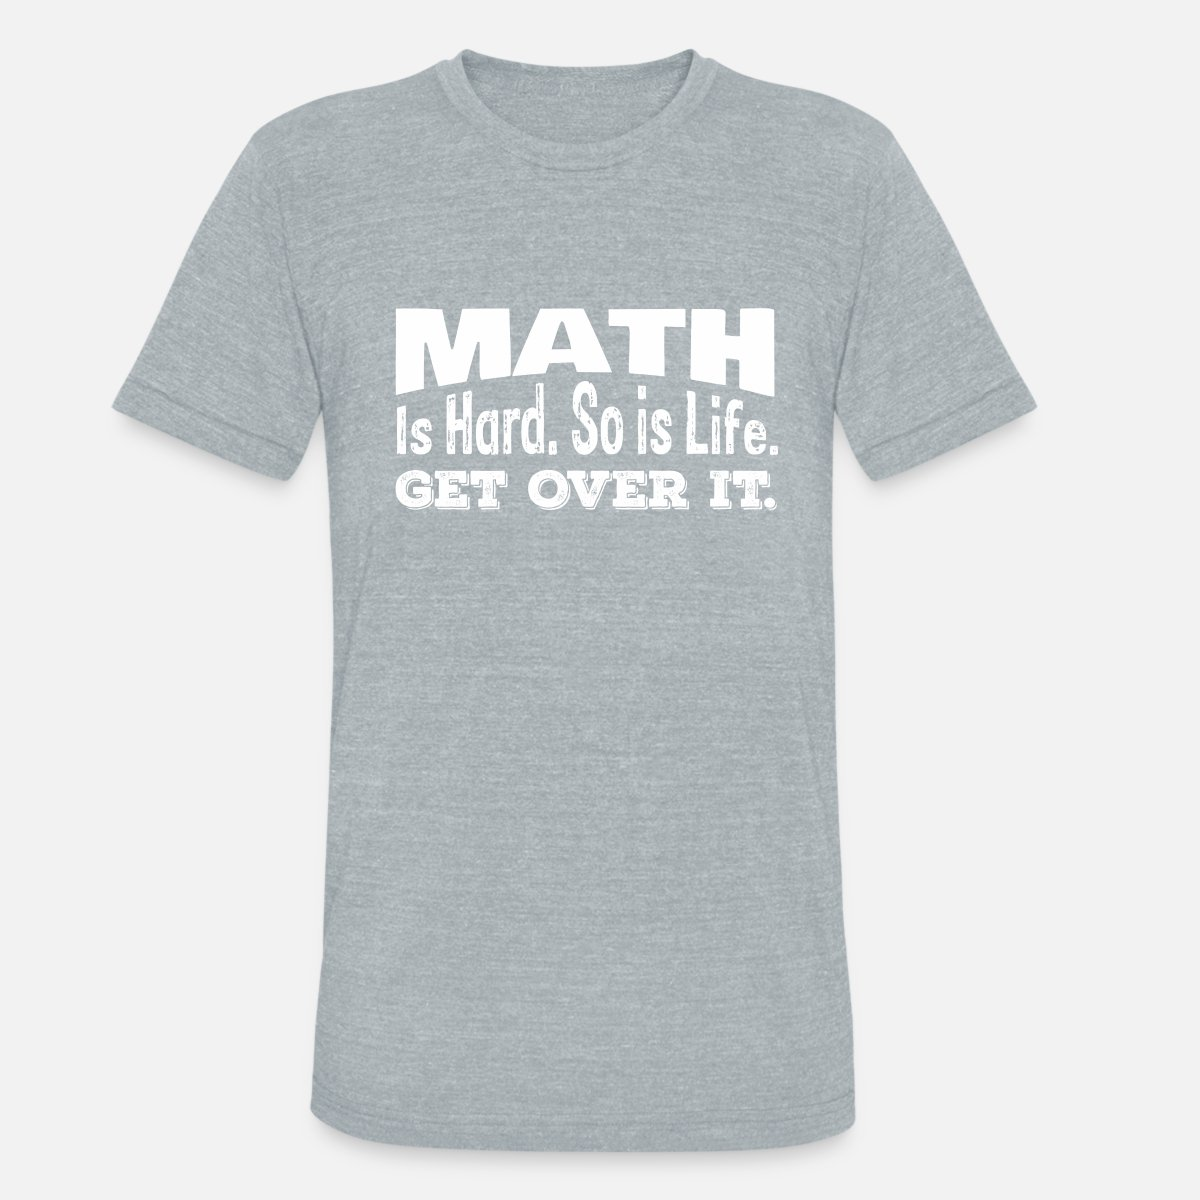 math is hard so is life get over it - math gift by bonshirt